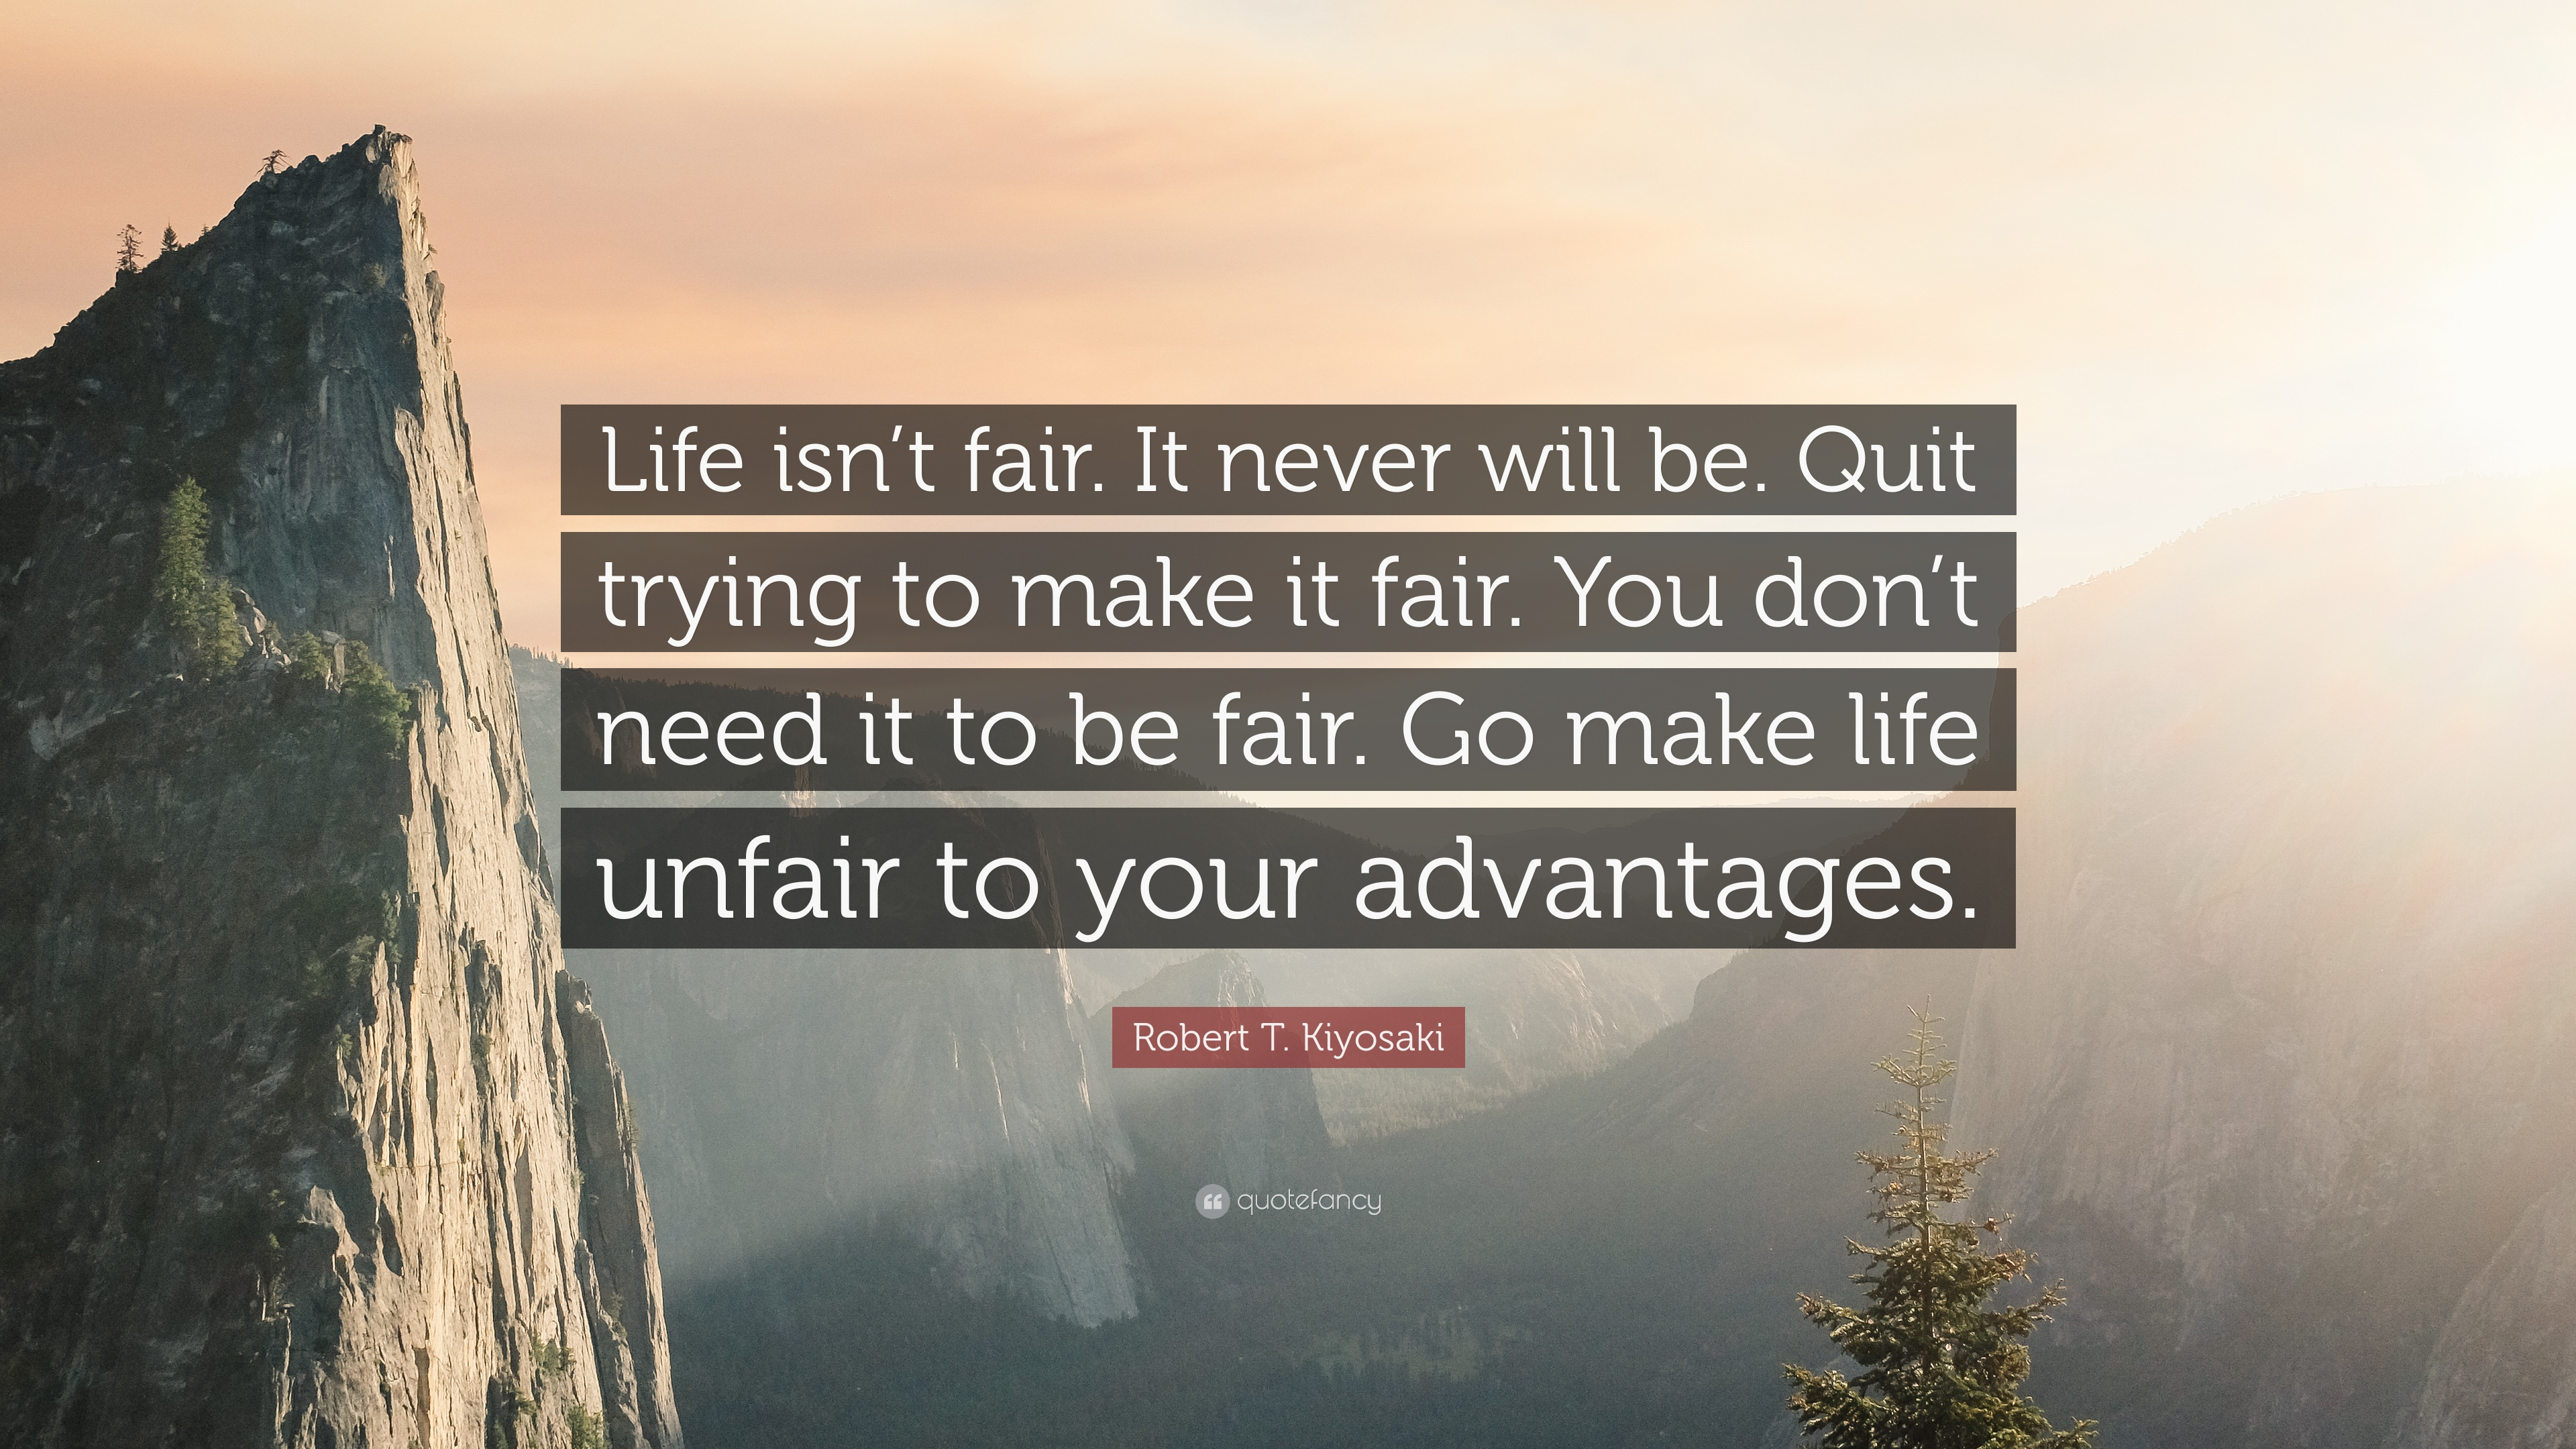 Robert T Kiyosaki Quote Life Isnt Fair It Never Will Be Quit